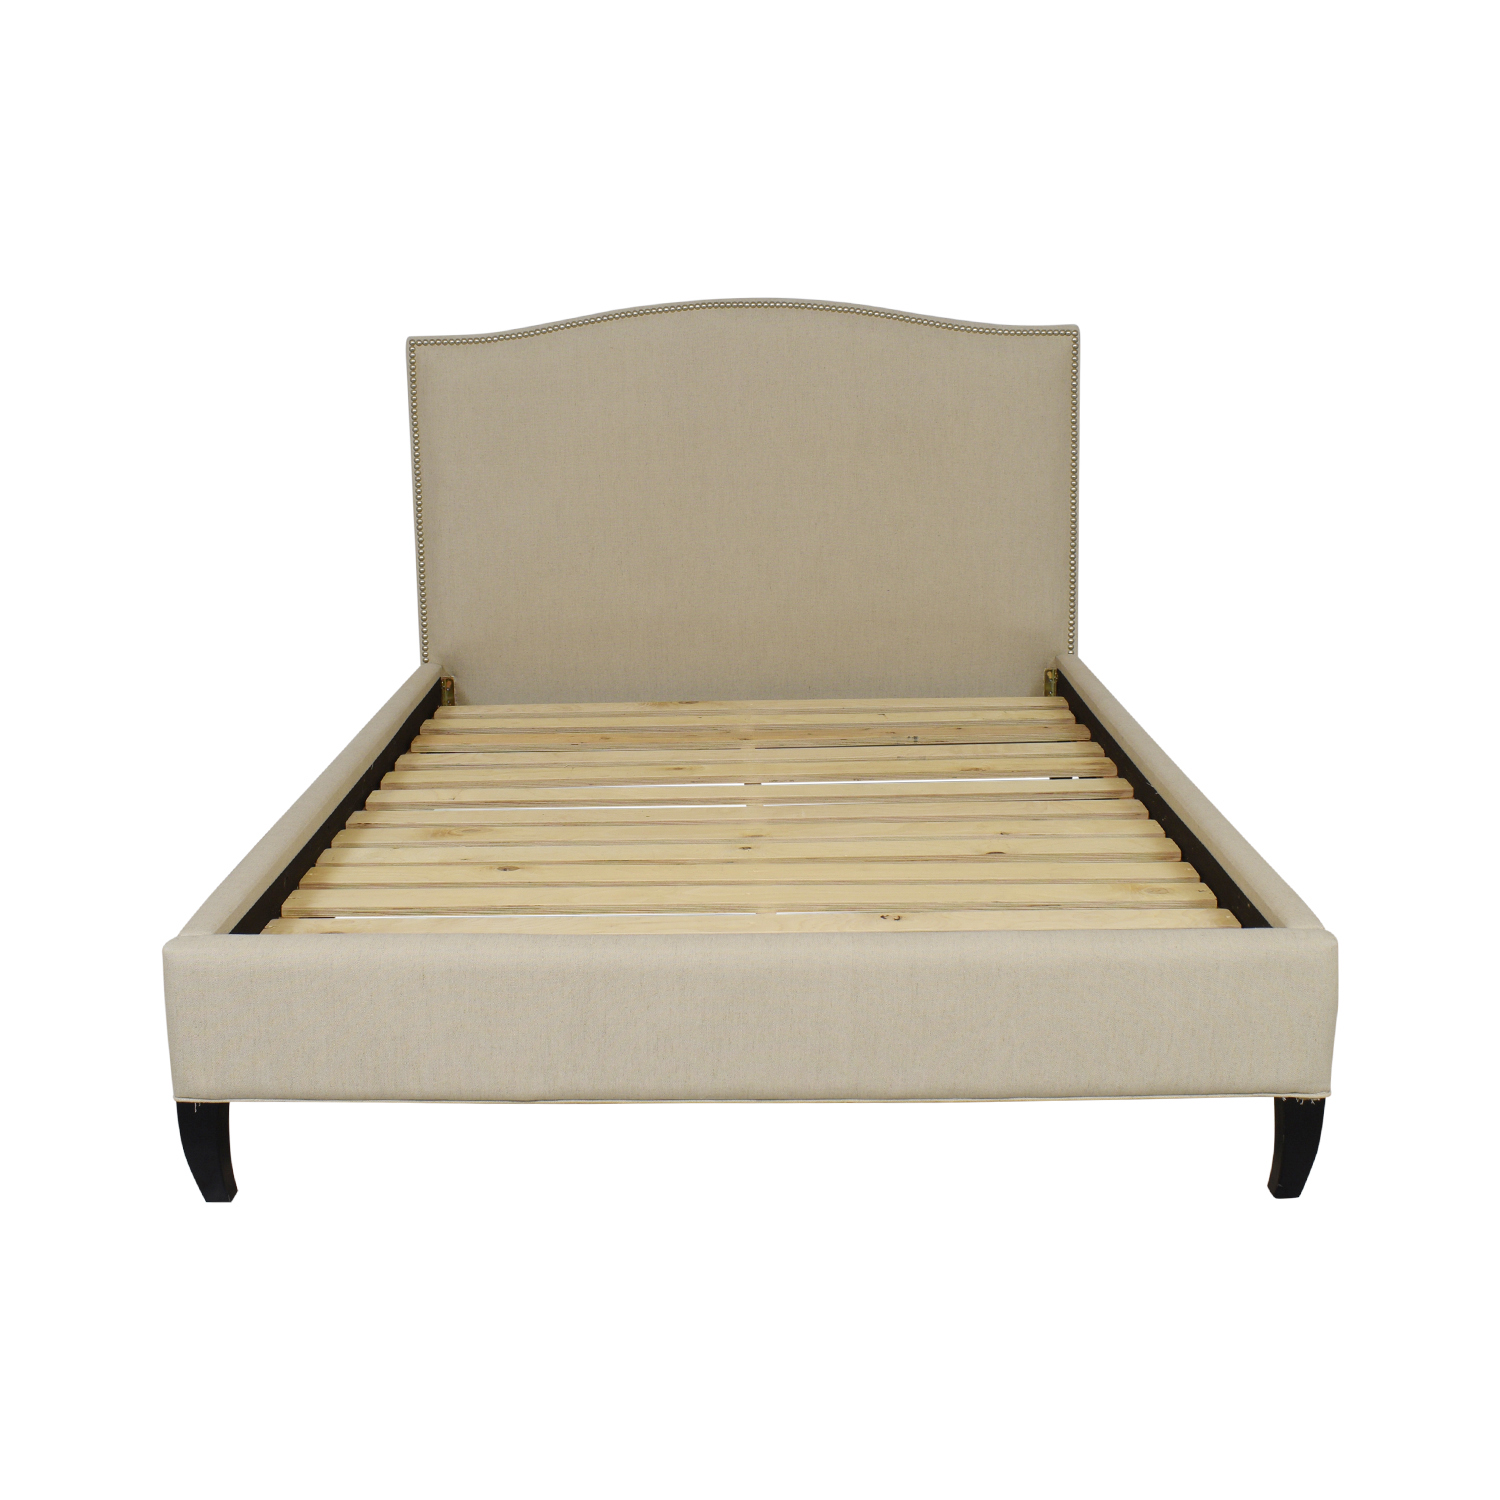 Crate & Barrel Crate & Barrel Colette Queen Upholstered Bed for sale